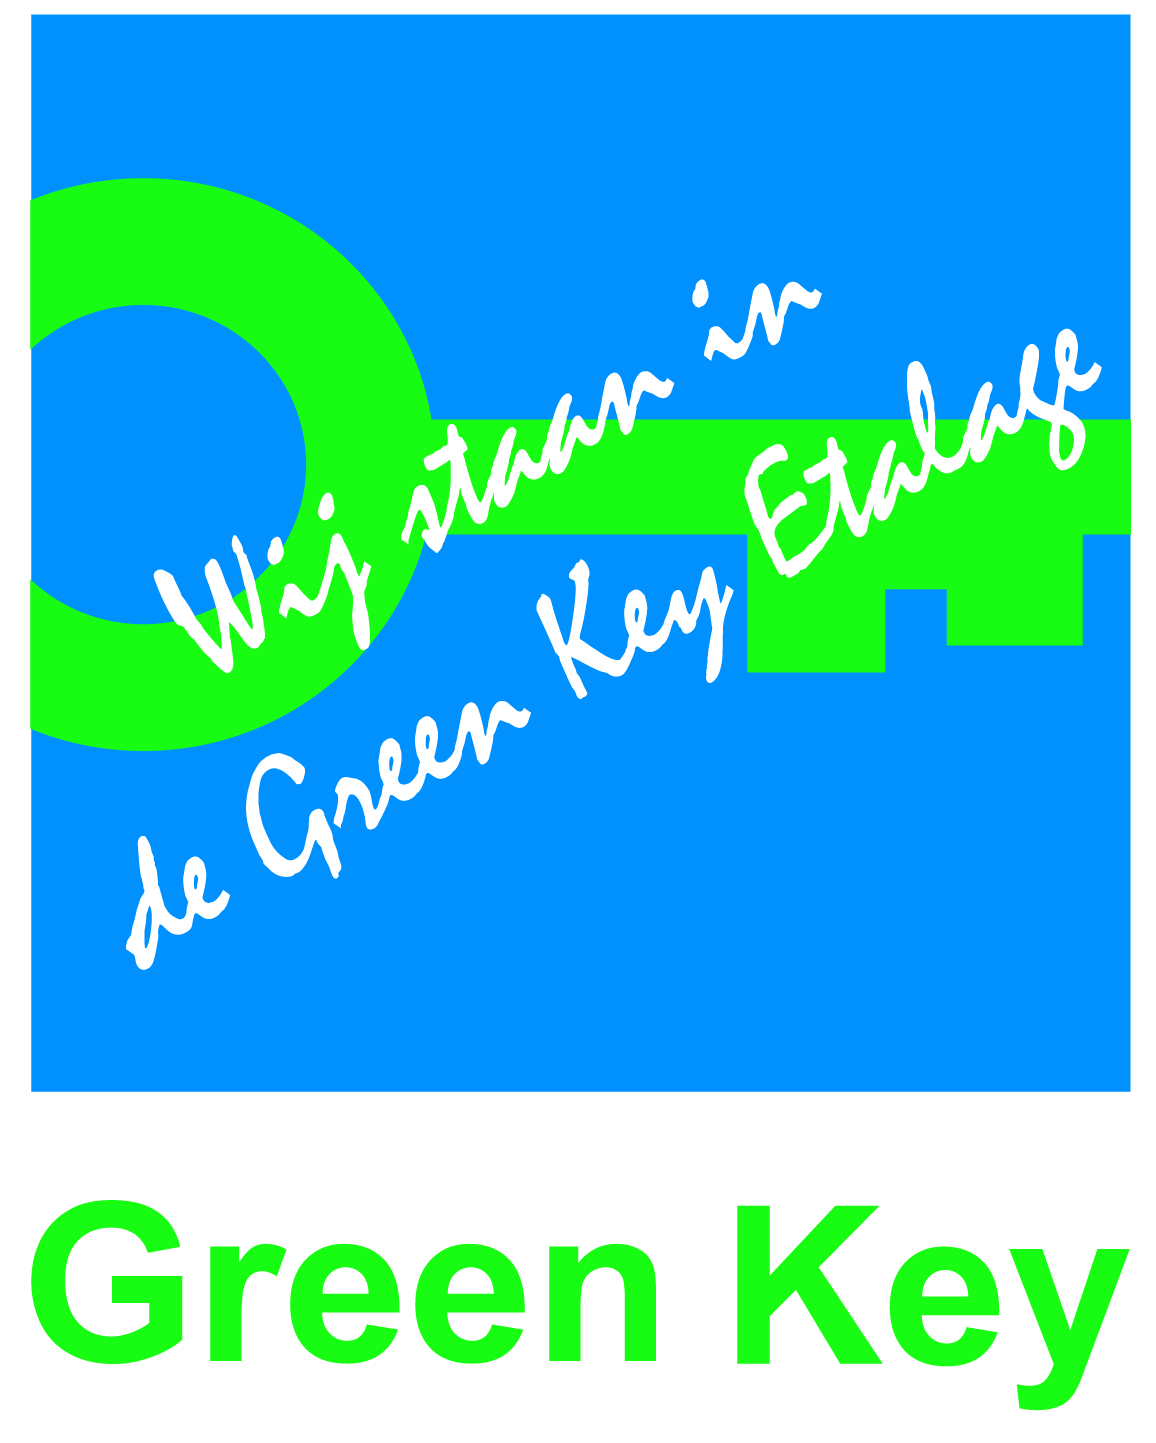 Green key Gamko